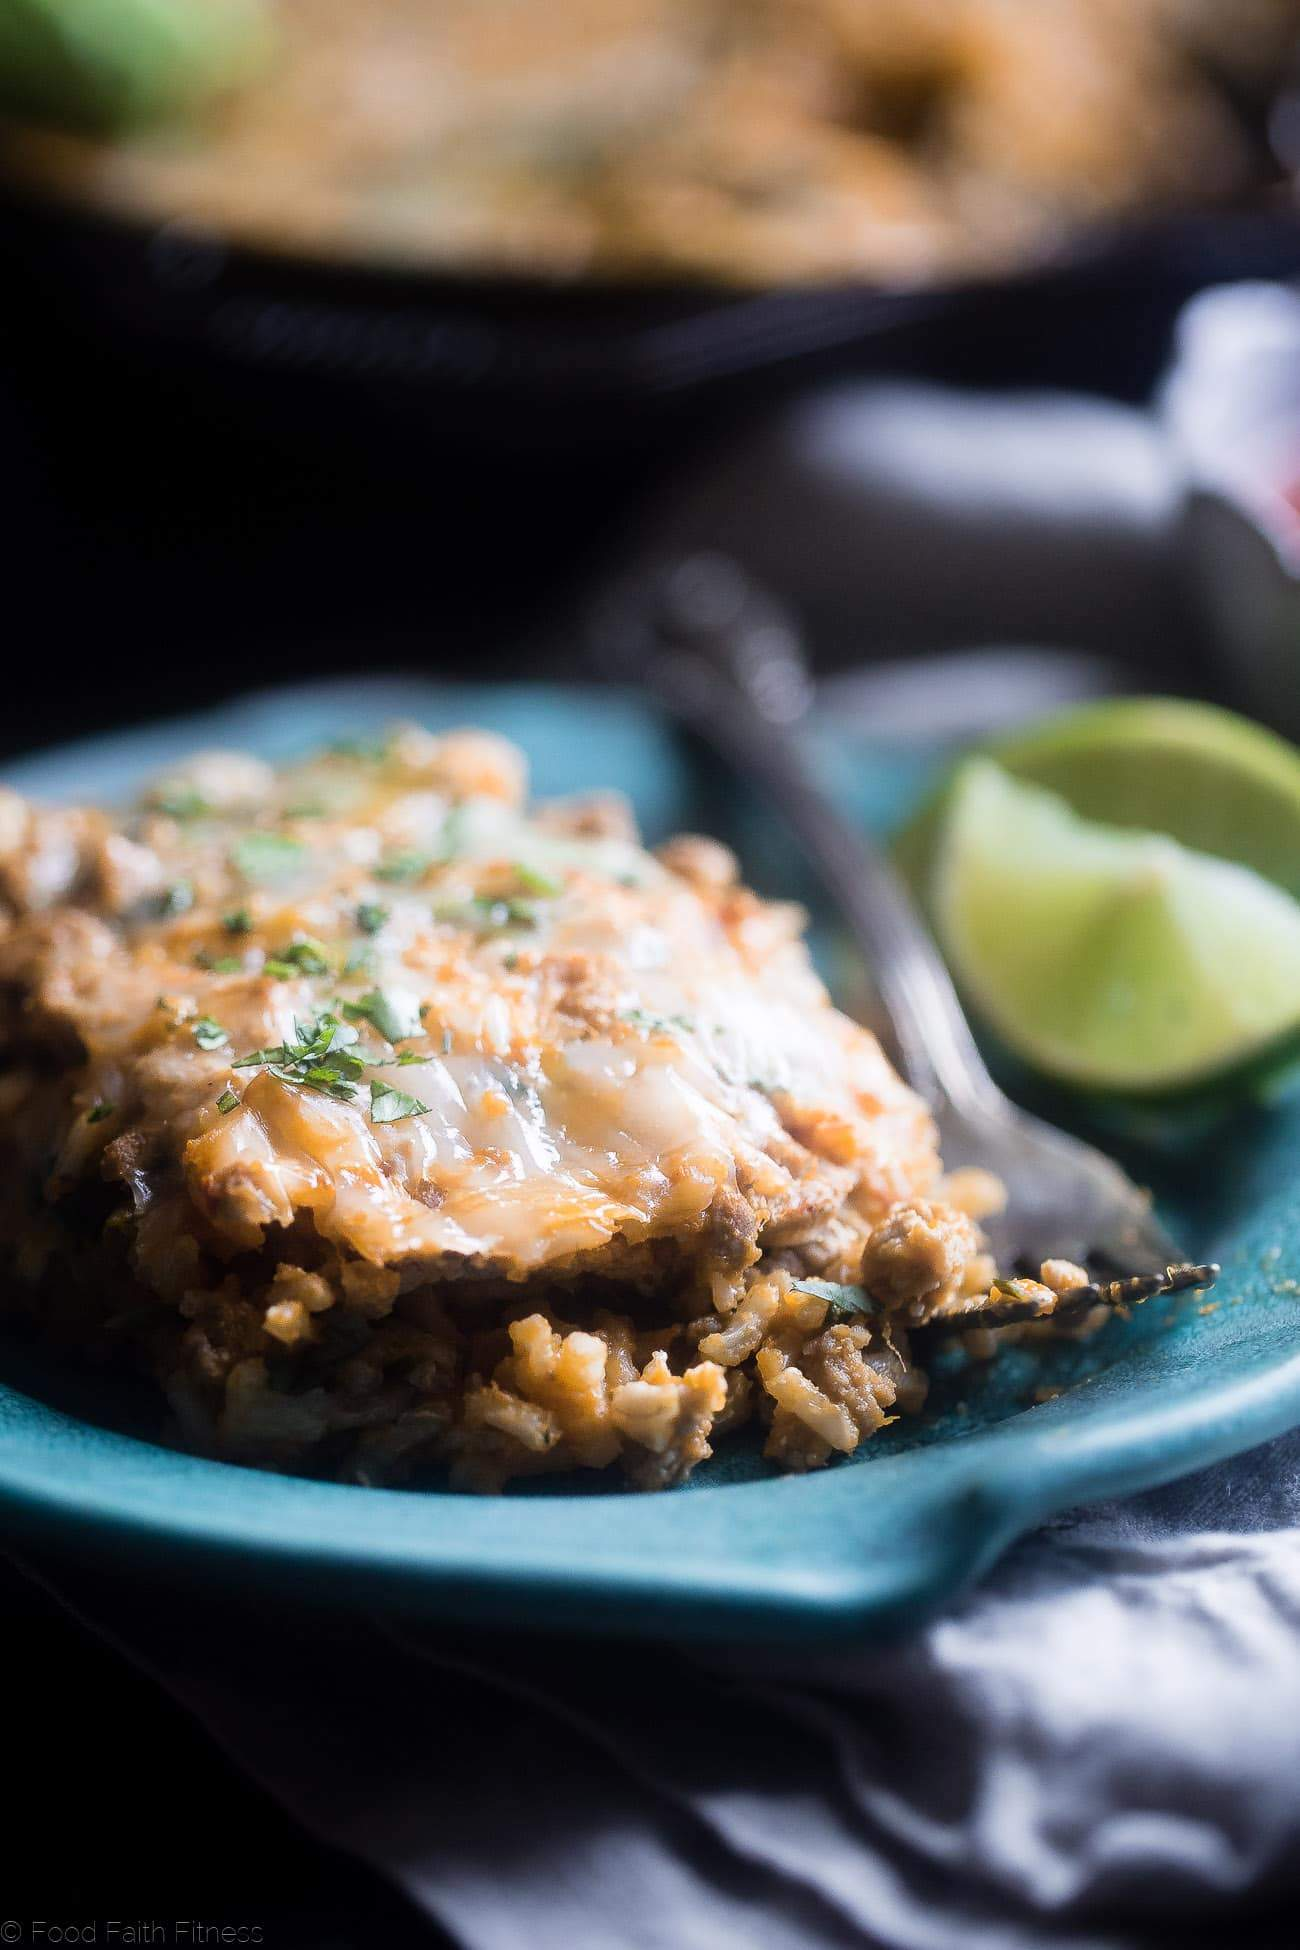 One Pot Mexican Chicken Rice Casserole - This chicken Mexican rice casserole uses sweet potato for extra creaminess! It's a healthy, gluten free, 8 ingredient dinner for busy weeknights that is only 330 calories! | Foodfaithfitness.com | @FoodFaithFit